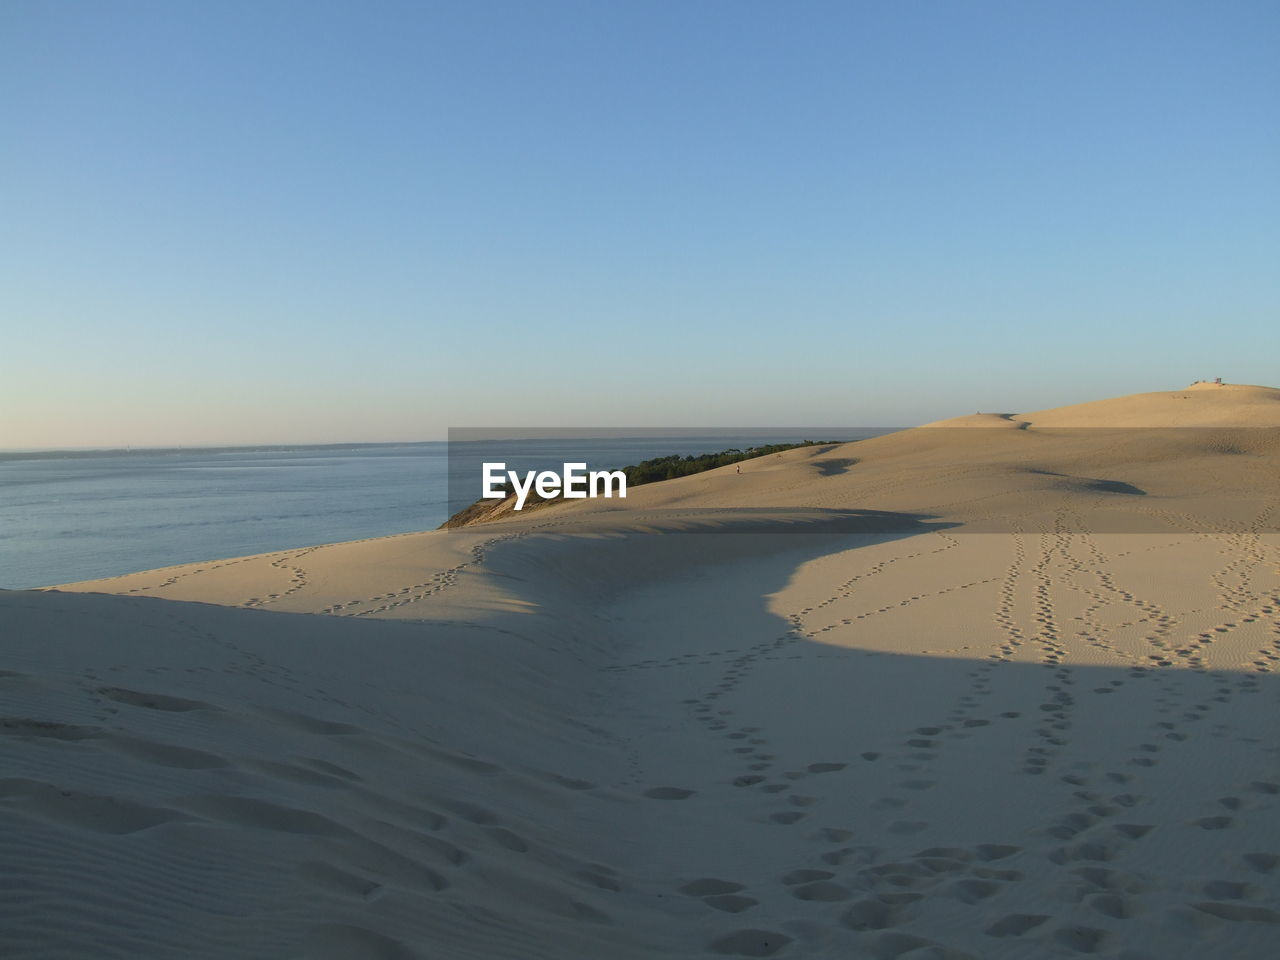 sand, beach, scenics, tranquil scene, sand dune, clear sky, sea, nature, tranquility, beauty in nature, horizon over water, footprint, copy space, water, desert, outdoors, day, sunlight, no people, blue, sky, arid climate